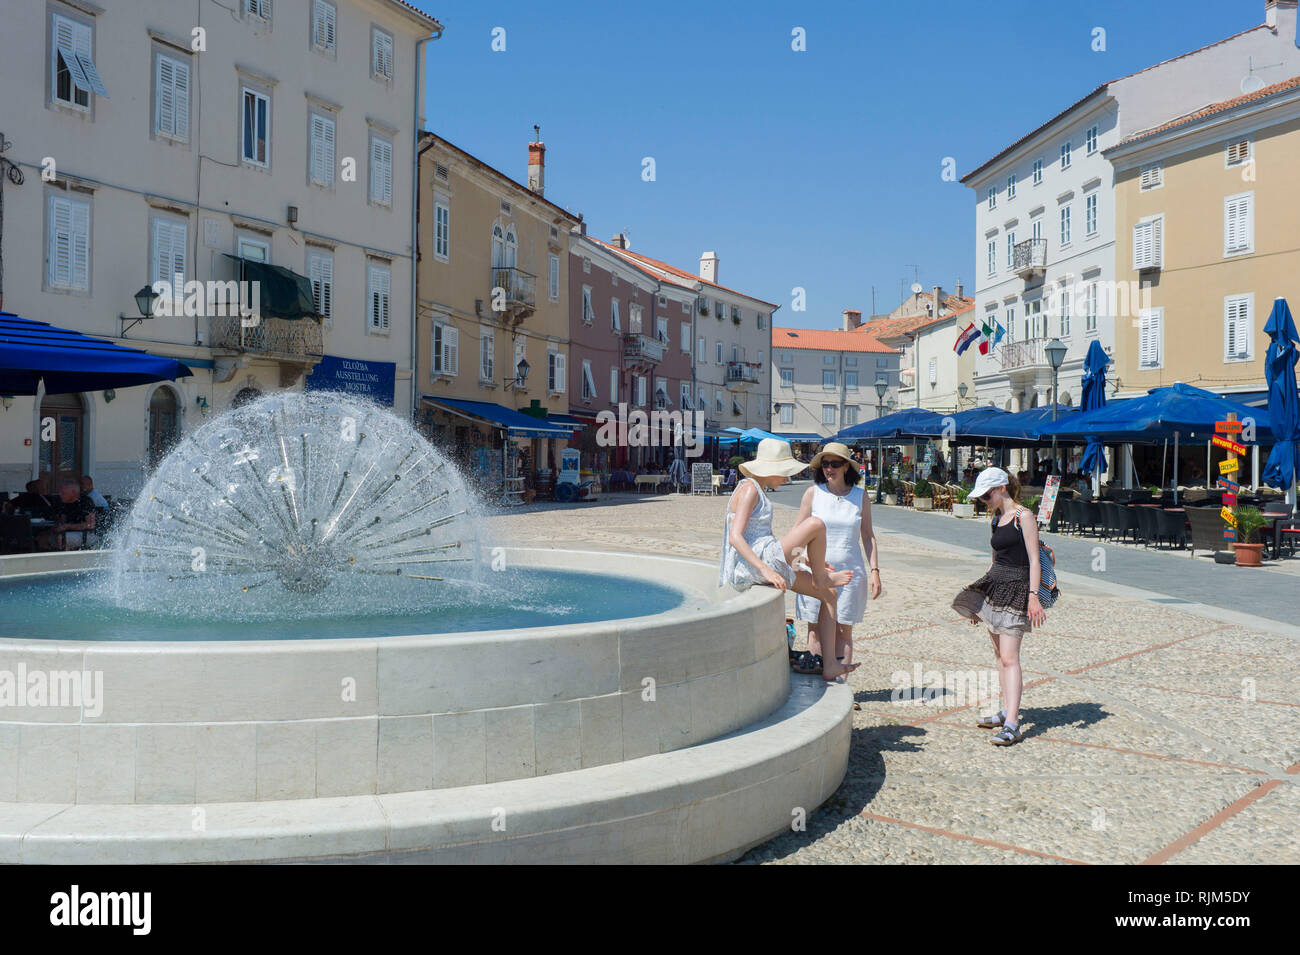 Cooling down on a hot day in the fountain in Cres Town, Cres Island, Croatia - Stock Image